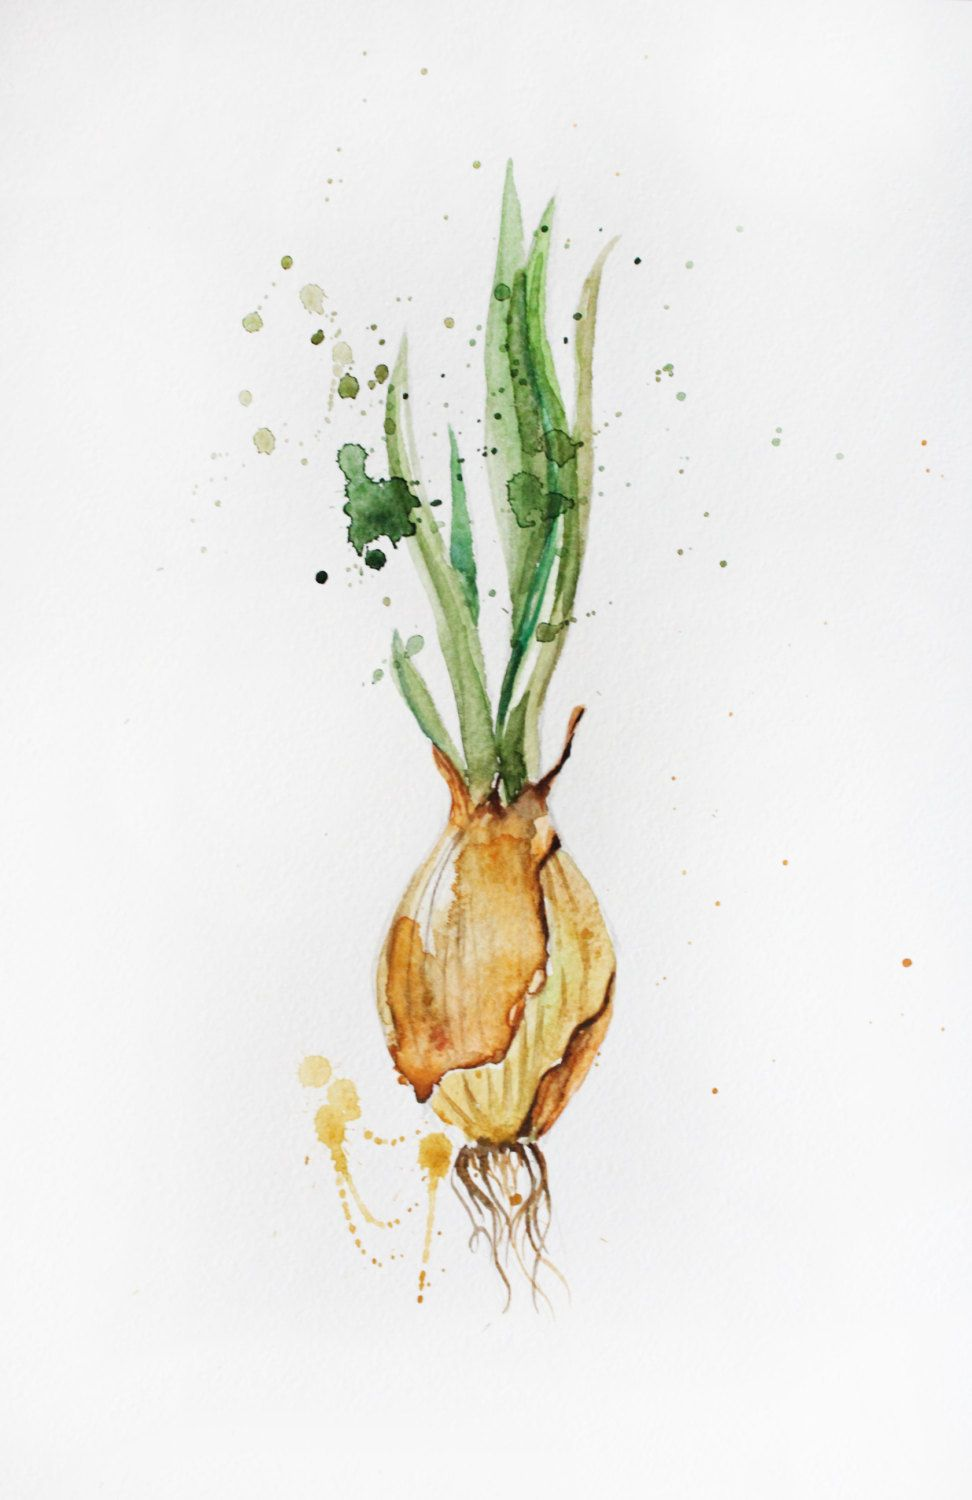 Original Watercolor Painting Green Onions Organic Vegetables